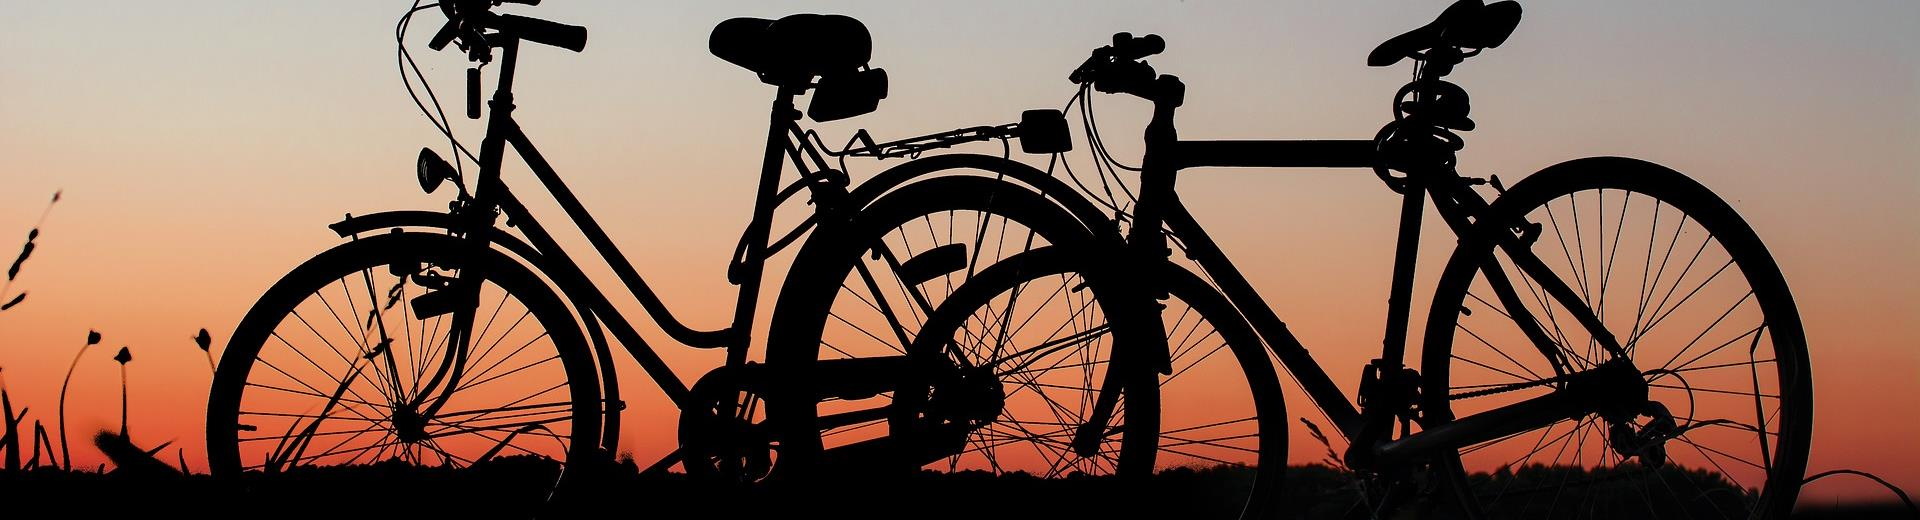 Best Western Hotel Biri, Padova 4 star, has a convenient city bike rental: find out all the most interesting itineraries in the area!